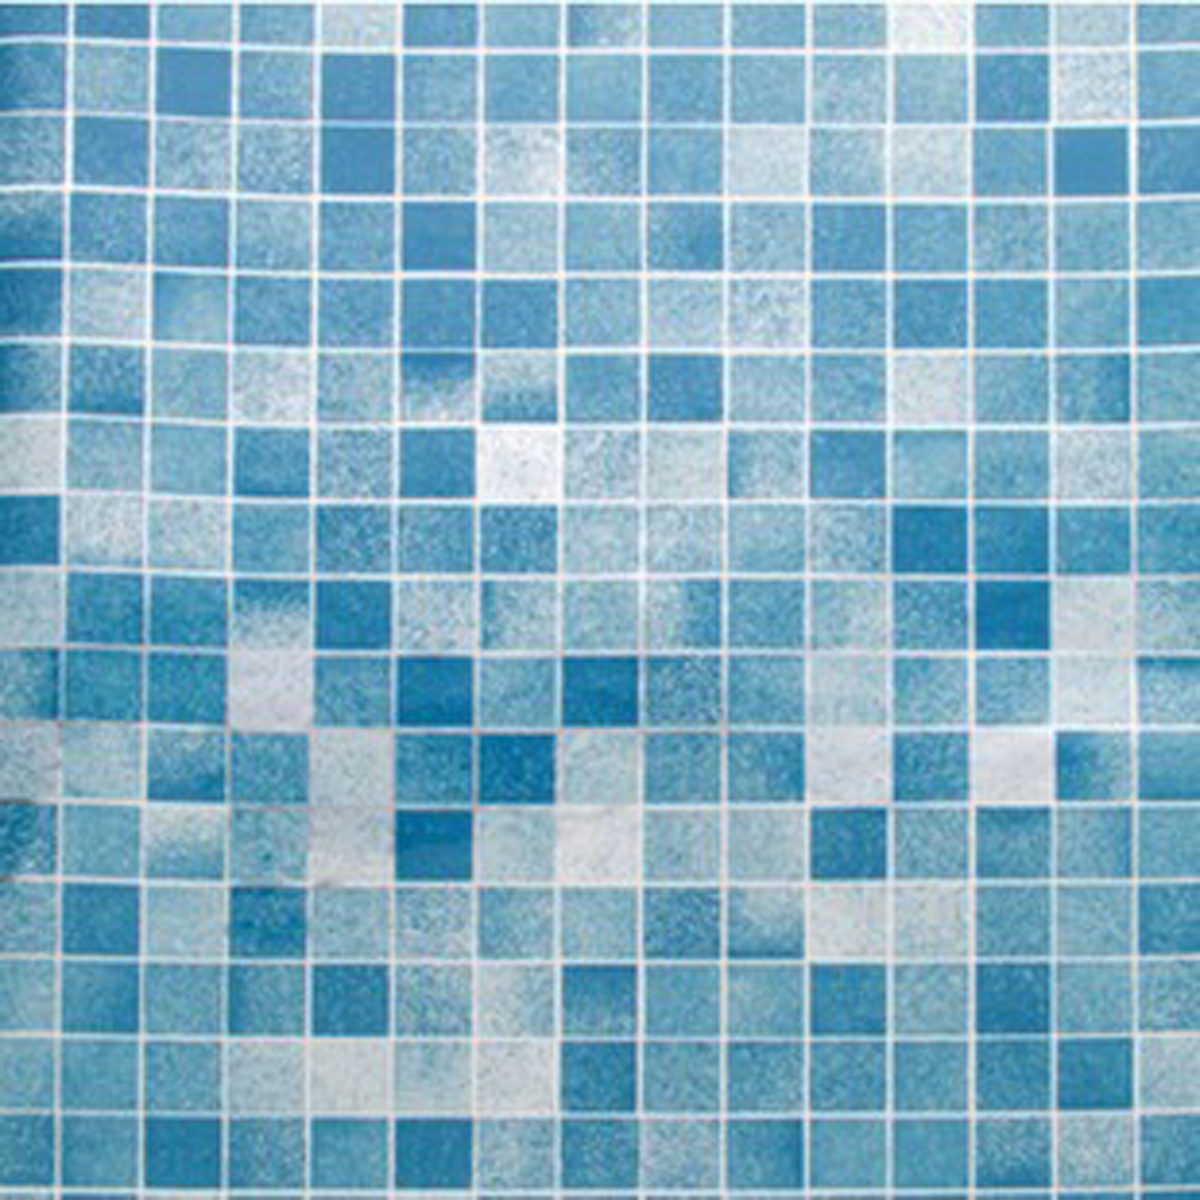 45 100cm Mosaic PVC Tile Transfers Wall Stickers Square Kitchen Bathroom Tile